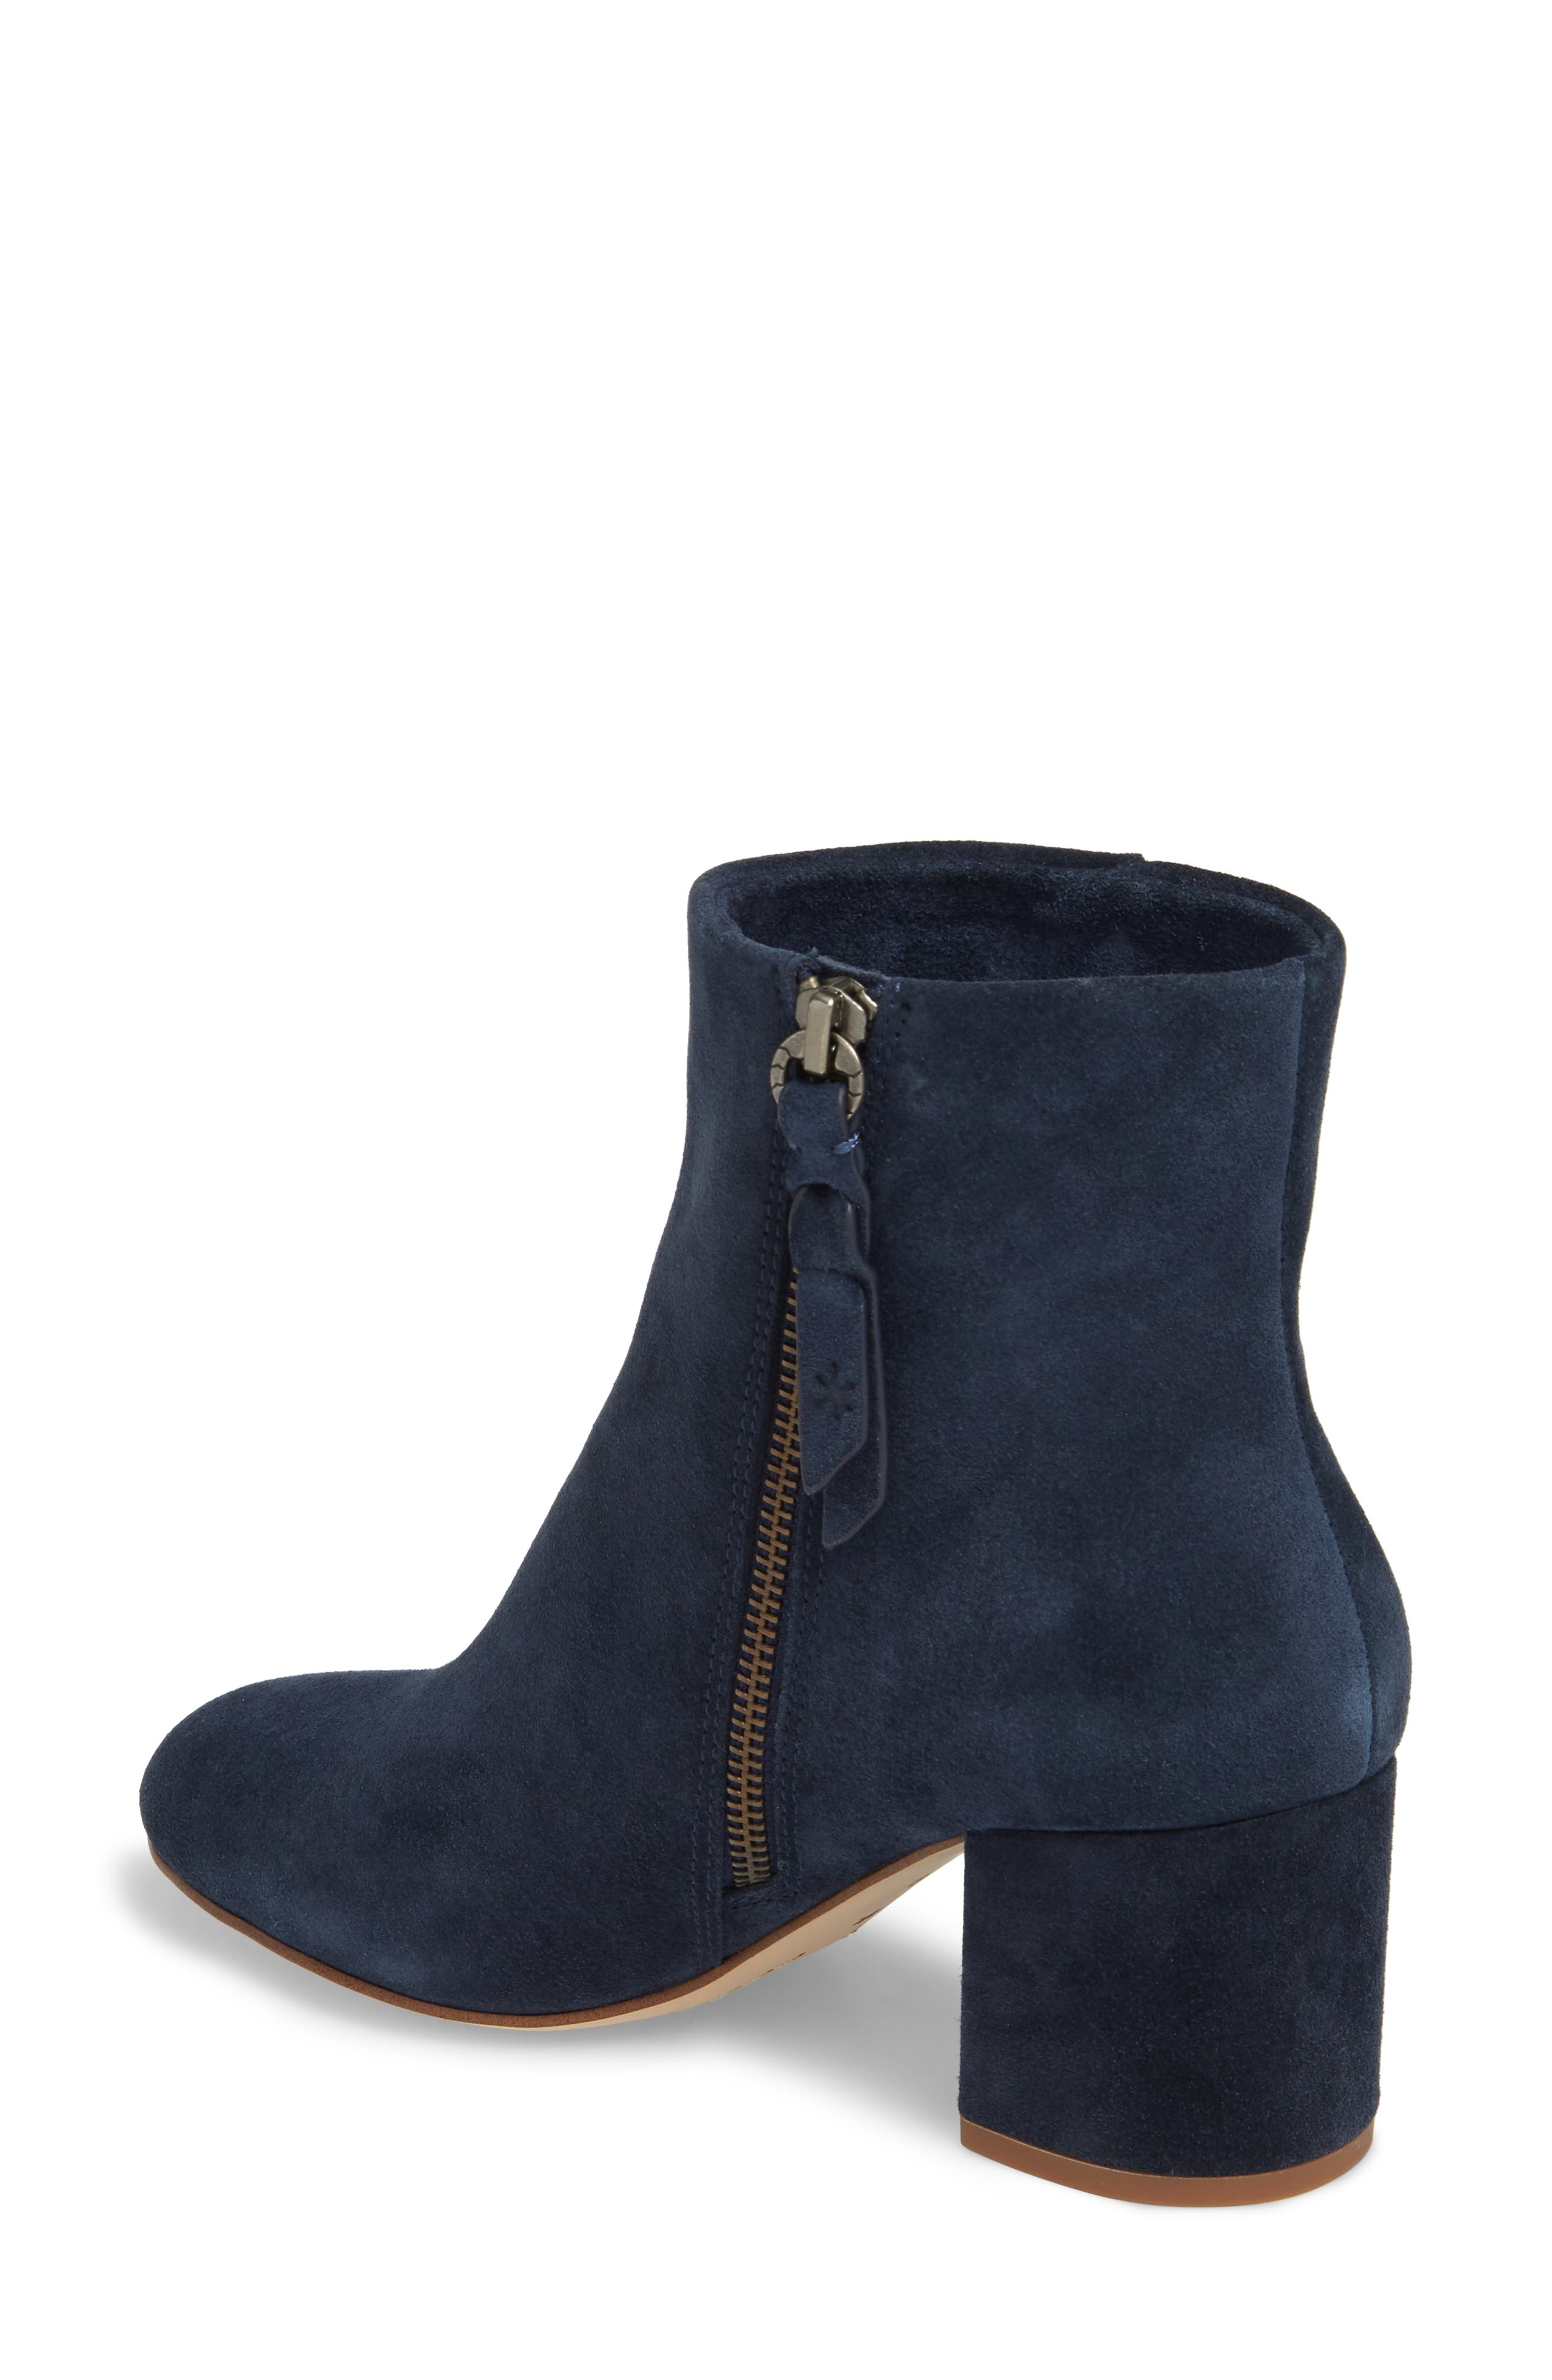 Nixie Bootie,                             Alternate thumbnail 2, color,                             Navy Suede